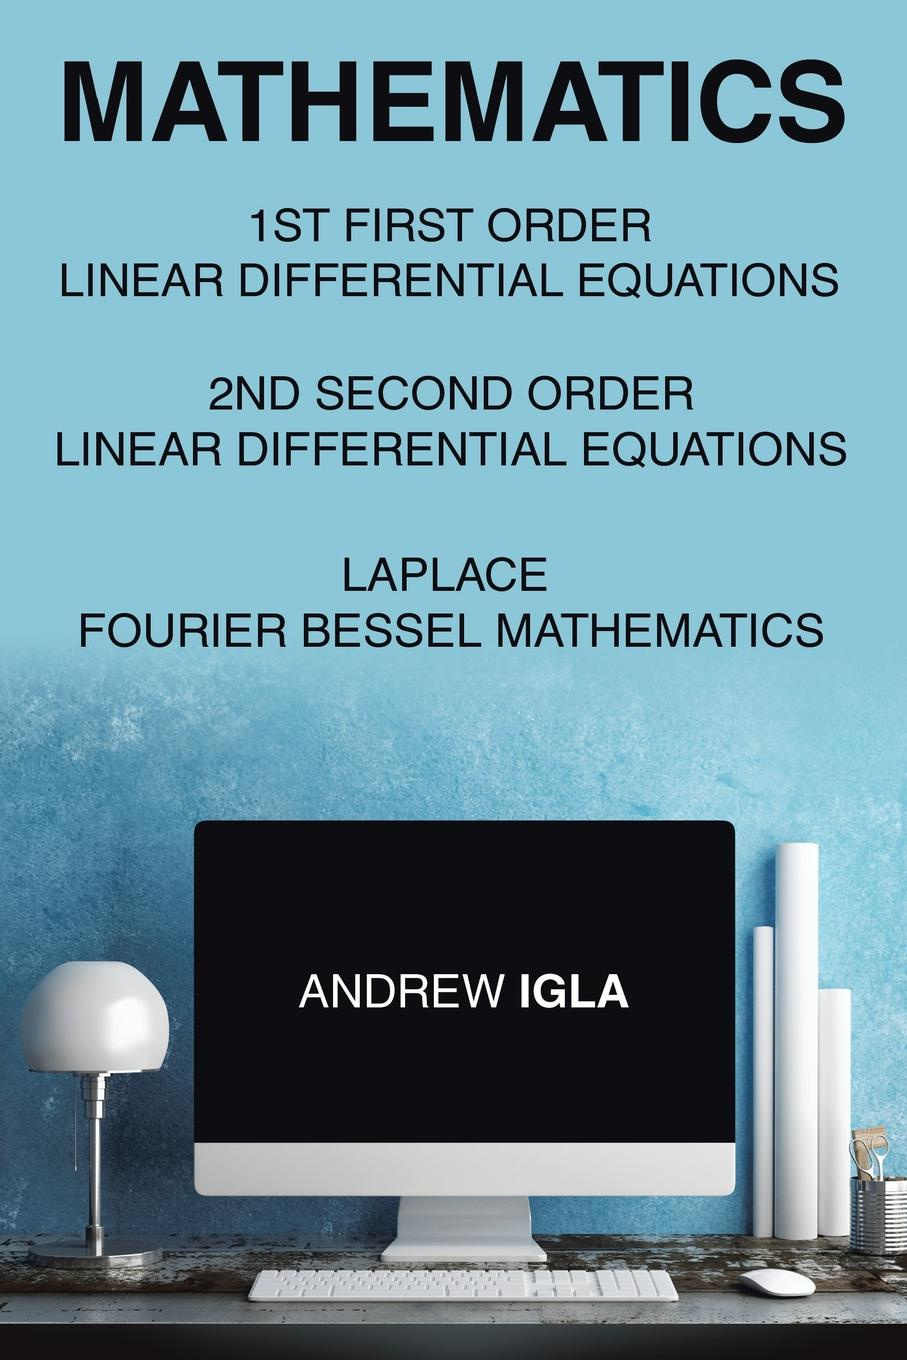 Andrew Igla Mathematics 1st First Order Linear Differential Equations 2nd Second Order Linear Differential Equations Laplace Fourier Bessel Mathematics dc house 6inch 12v 5 7mm s solar tracker 150mm 15000n linear actuator multi purpose linear actuator